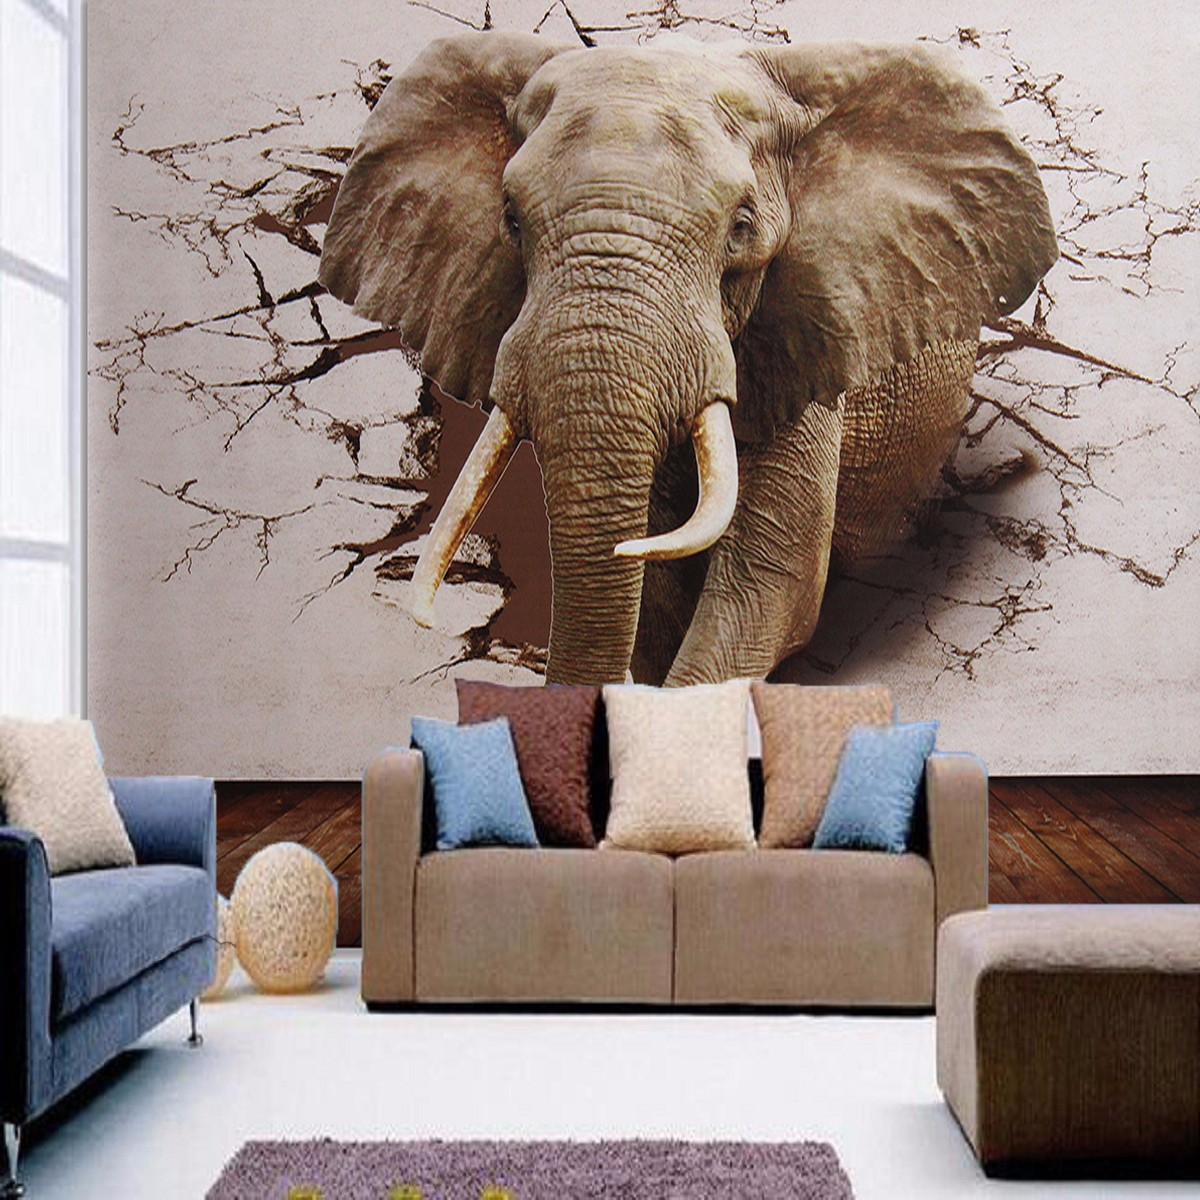 3D Large Elephant Walk Wallpapers Wall Sticker Square Non Woven Home Wall Murals Decoration